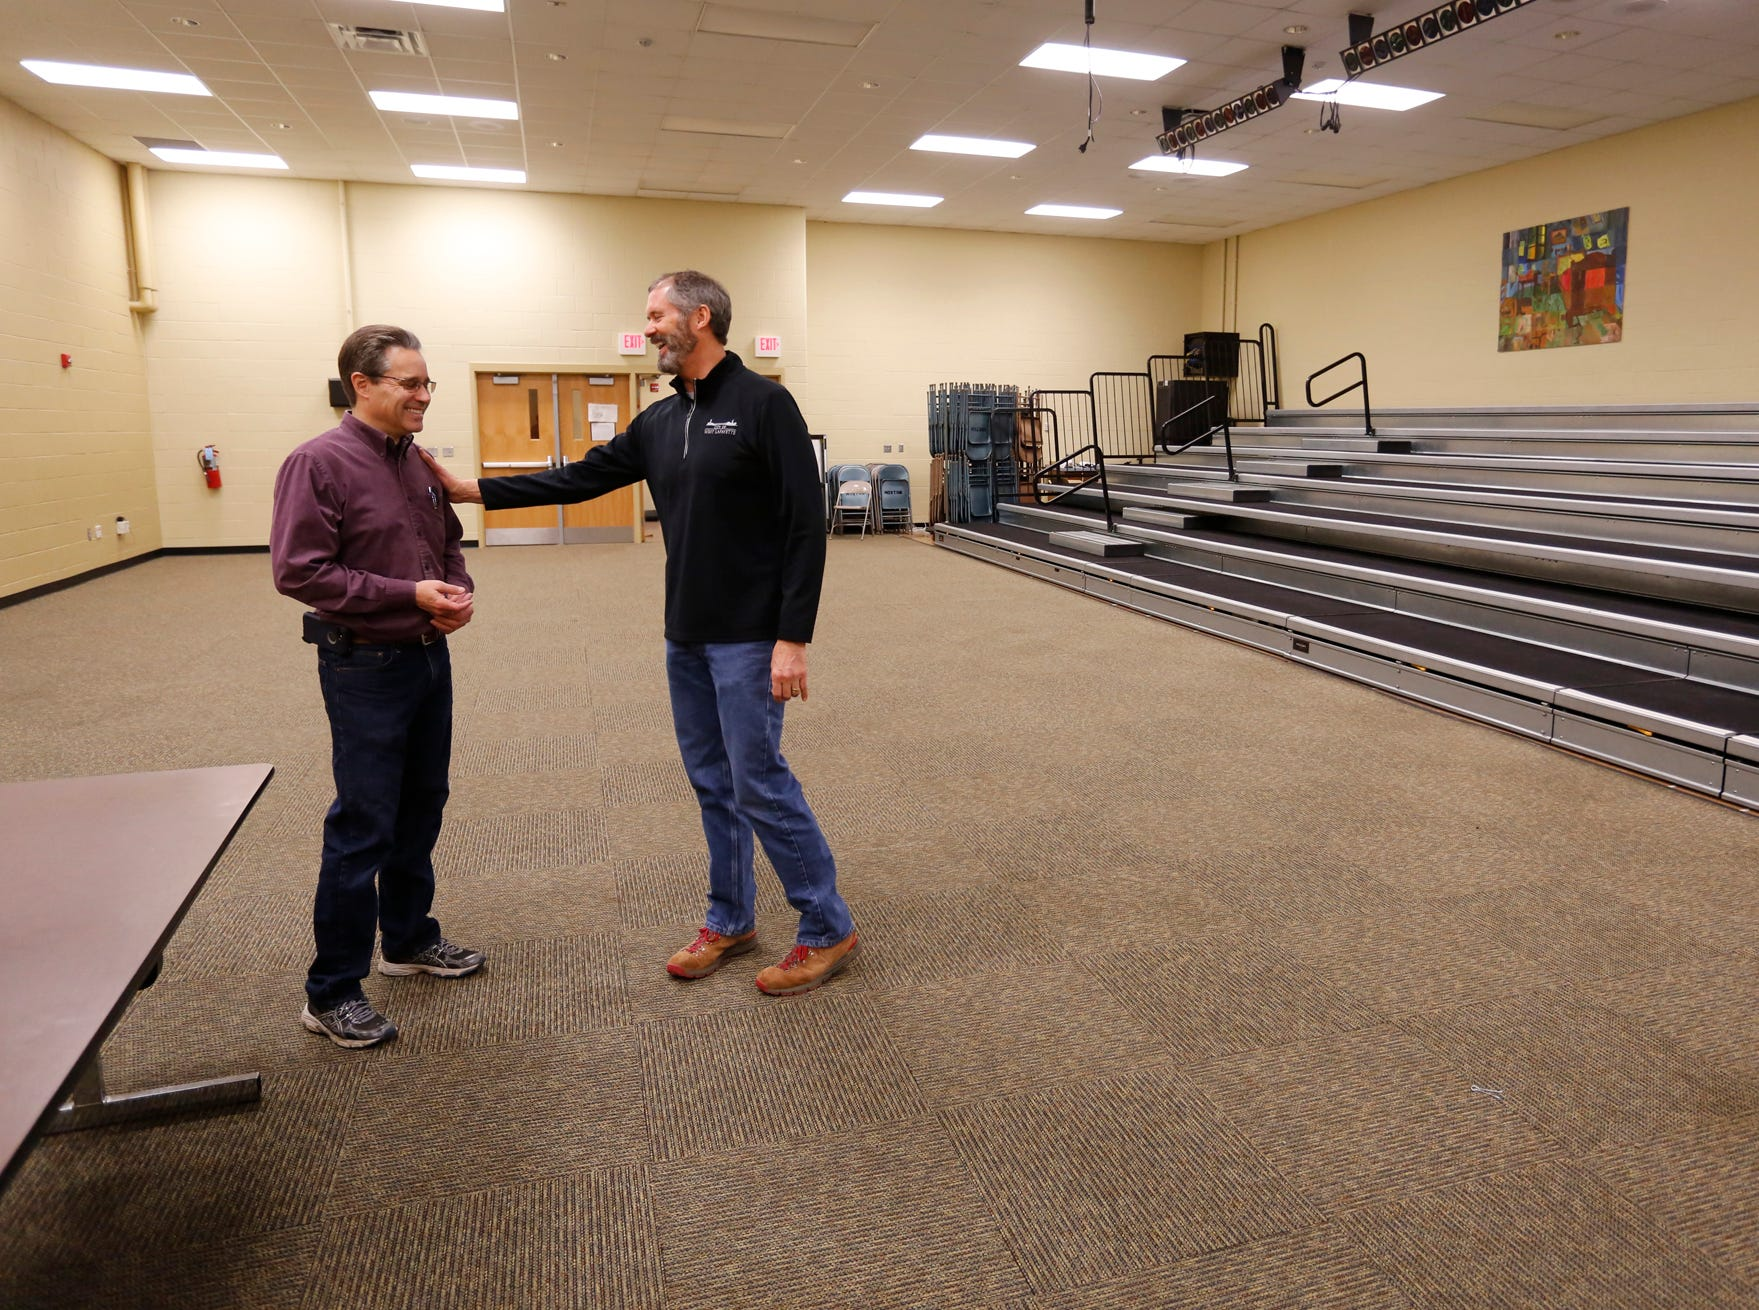 West Lafayette Mayor John Dennis and City Controller Peter Gray share a laugh in the large group instruction room (LGI) inside the former Happy Hollow School Monday, December 17, 2018, in West Lafayette. The city is moving it's offices into Happy Hollow for two years while the Morton Center is being renovated. The city will move its offices back to the Morton Center when renovations are completed.